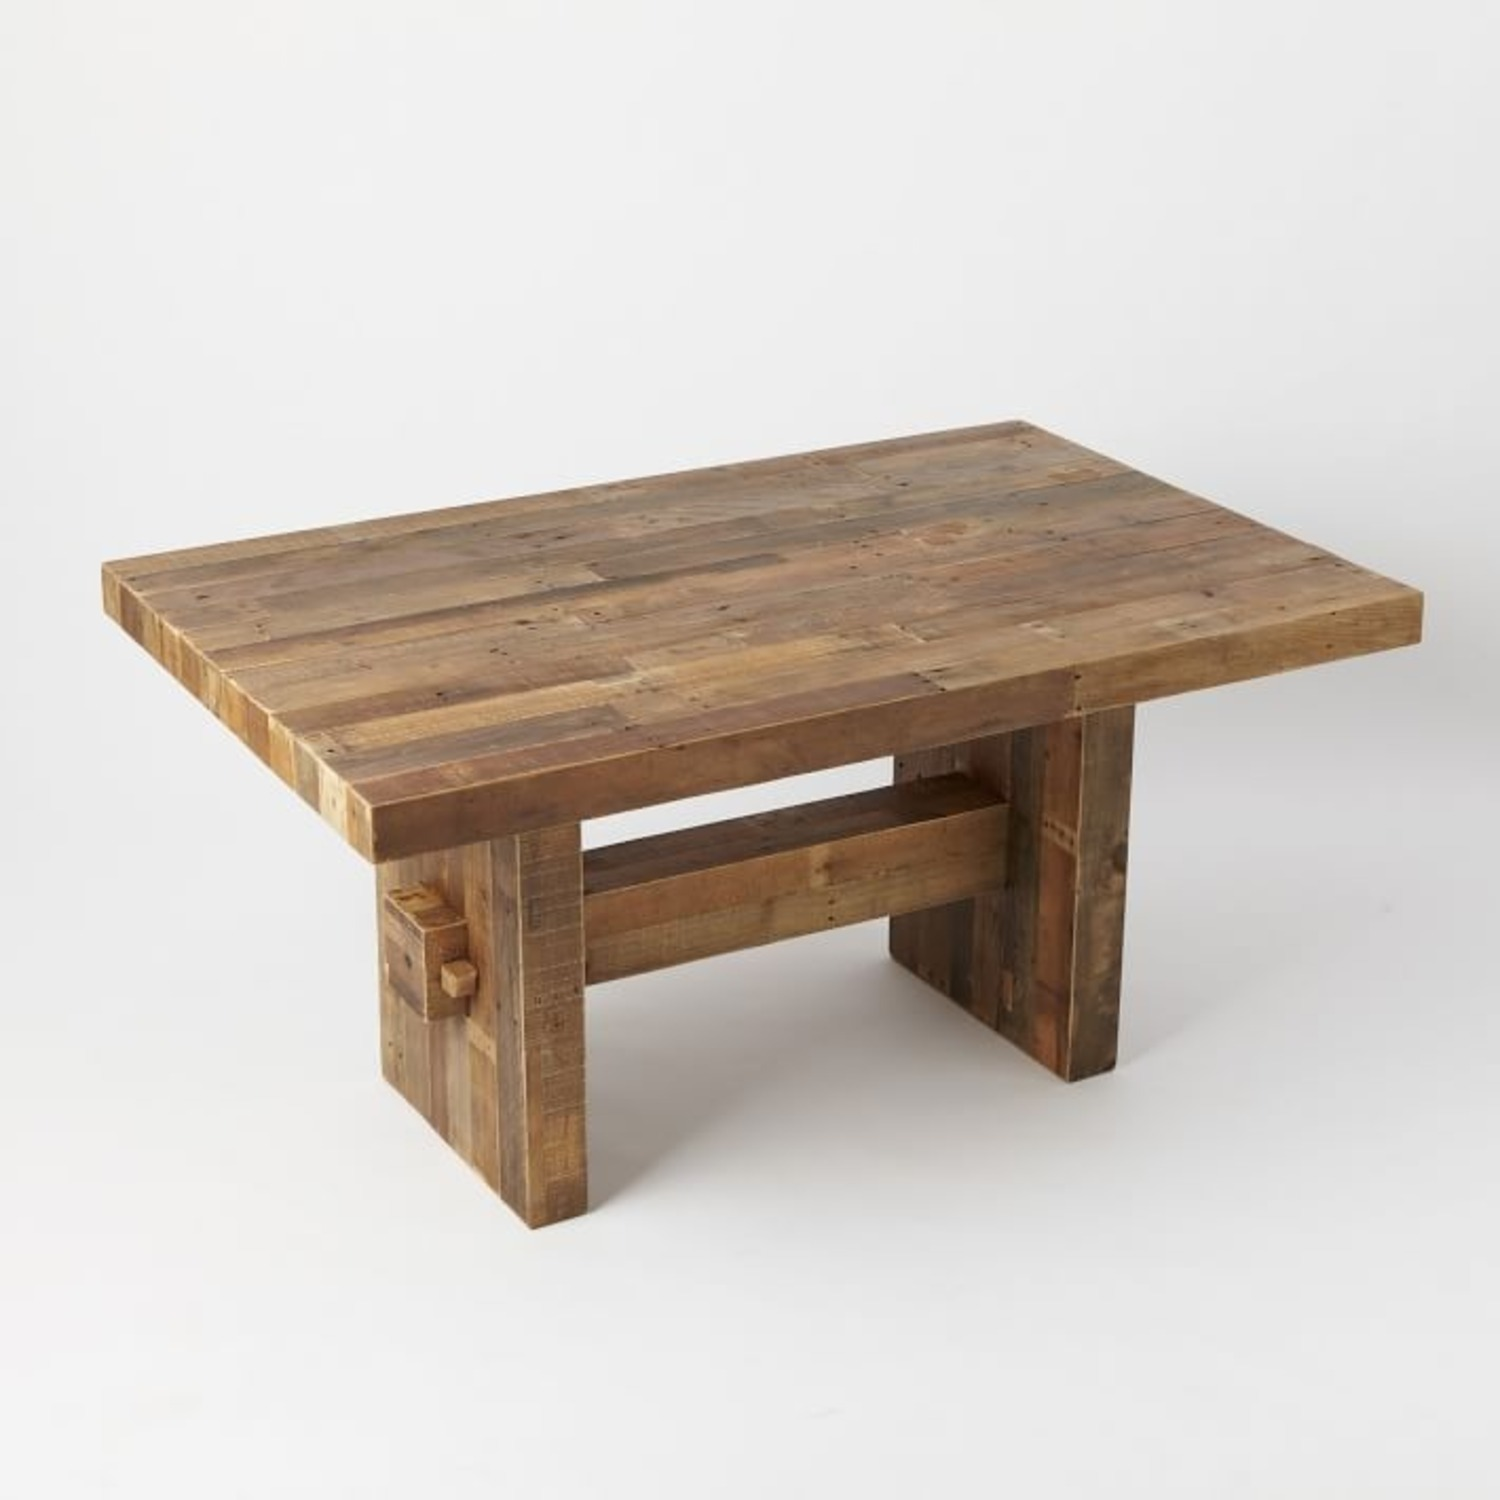 West Elm Emerson Reclaimed Wood Table - image-5